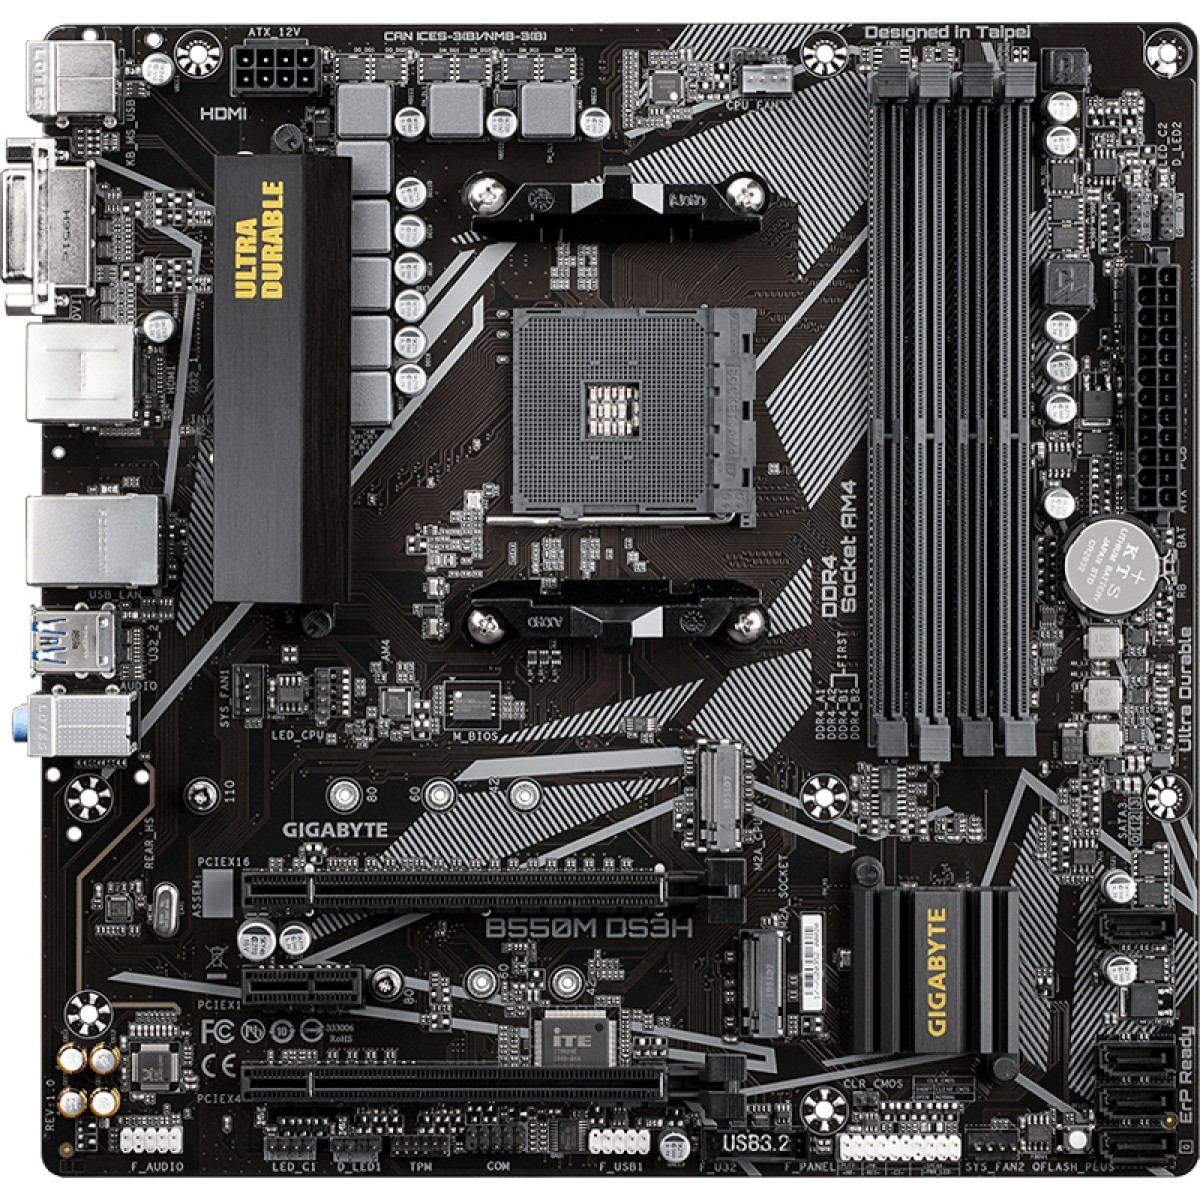 Placa Mãe Gigabyte B550M DS3H, Chipset B550, AMD AM4, mATX, DDR4, 9MB55MDSH-00-10